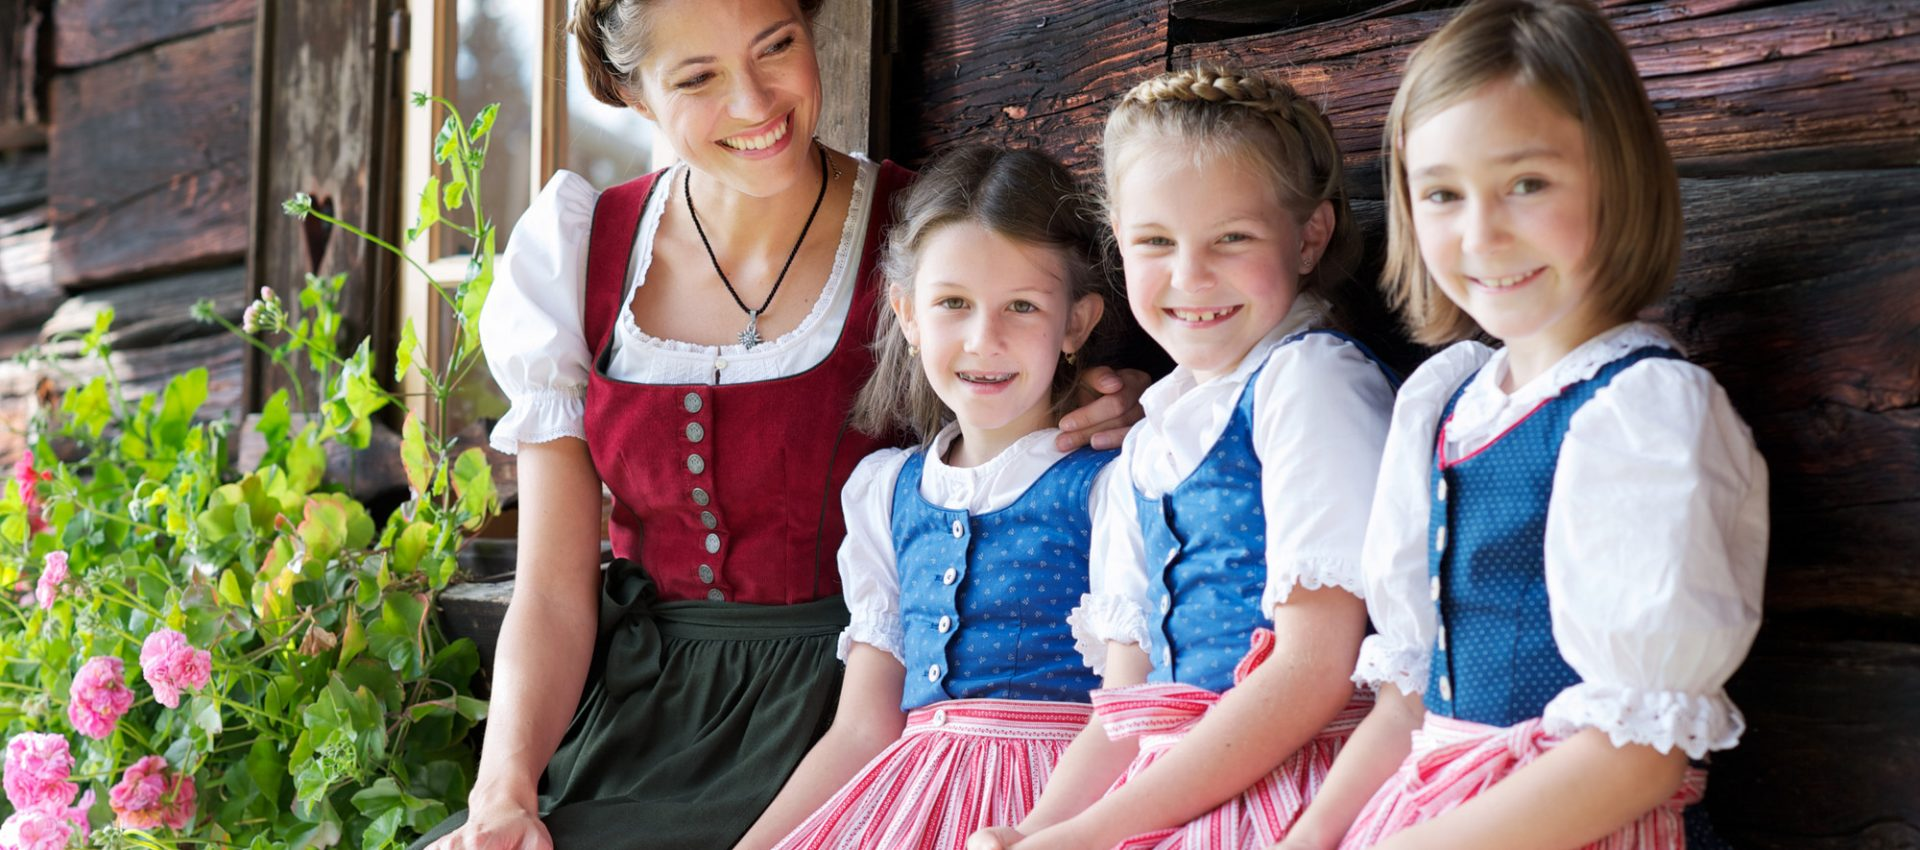 Woman with 3 girls in traditional costumes